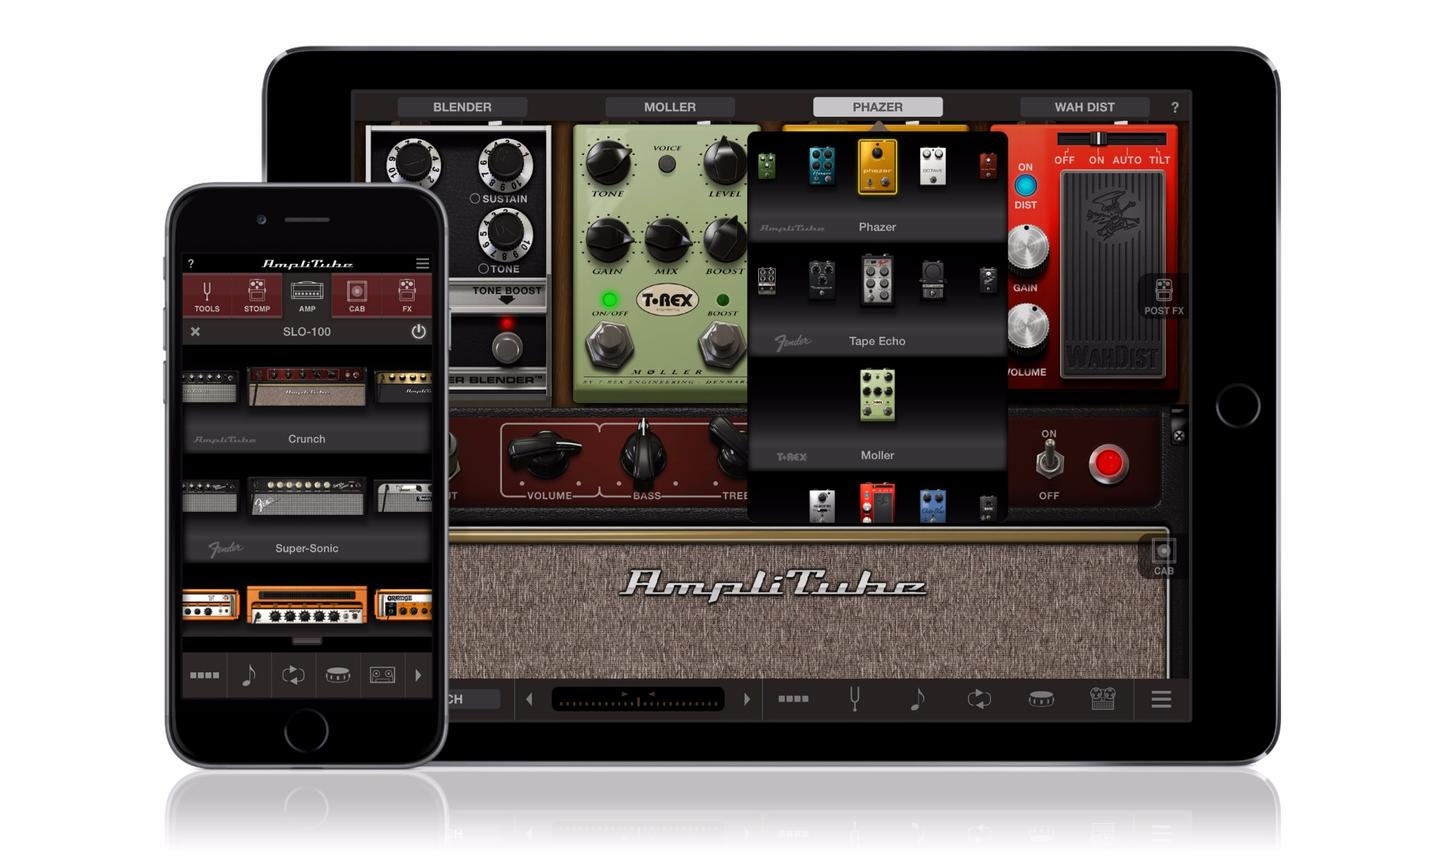 The new iRig HD 2 comes with a free download pass for IK Multimedia's AmpliTube modeling and recording software